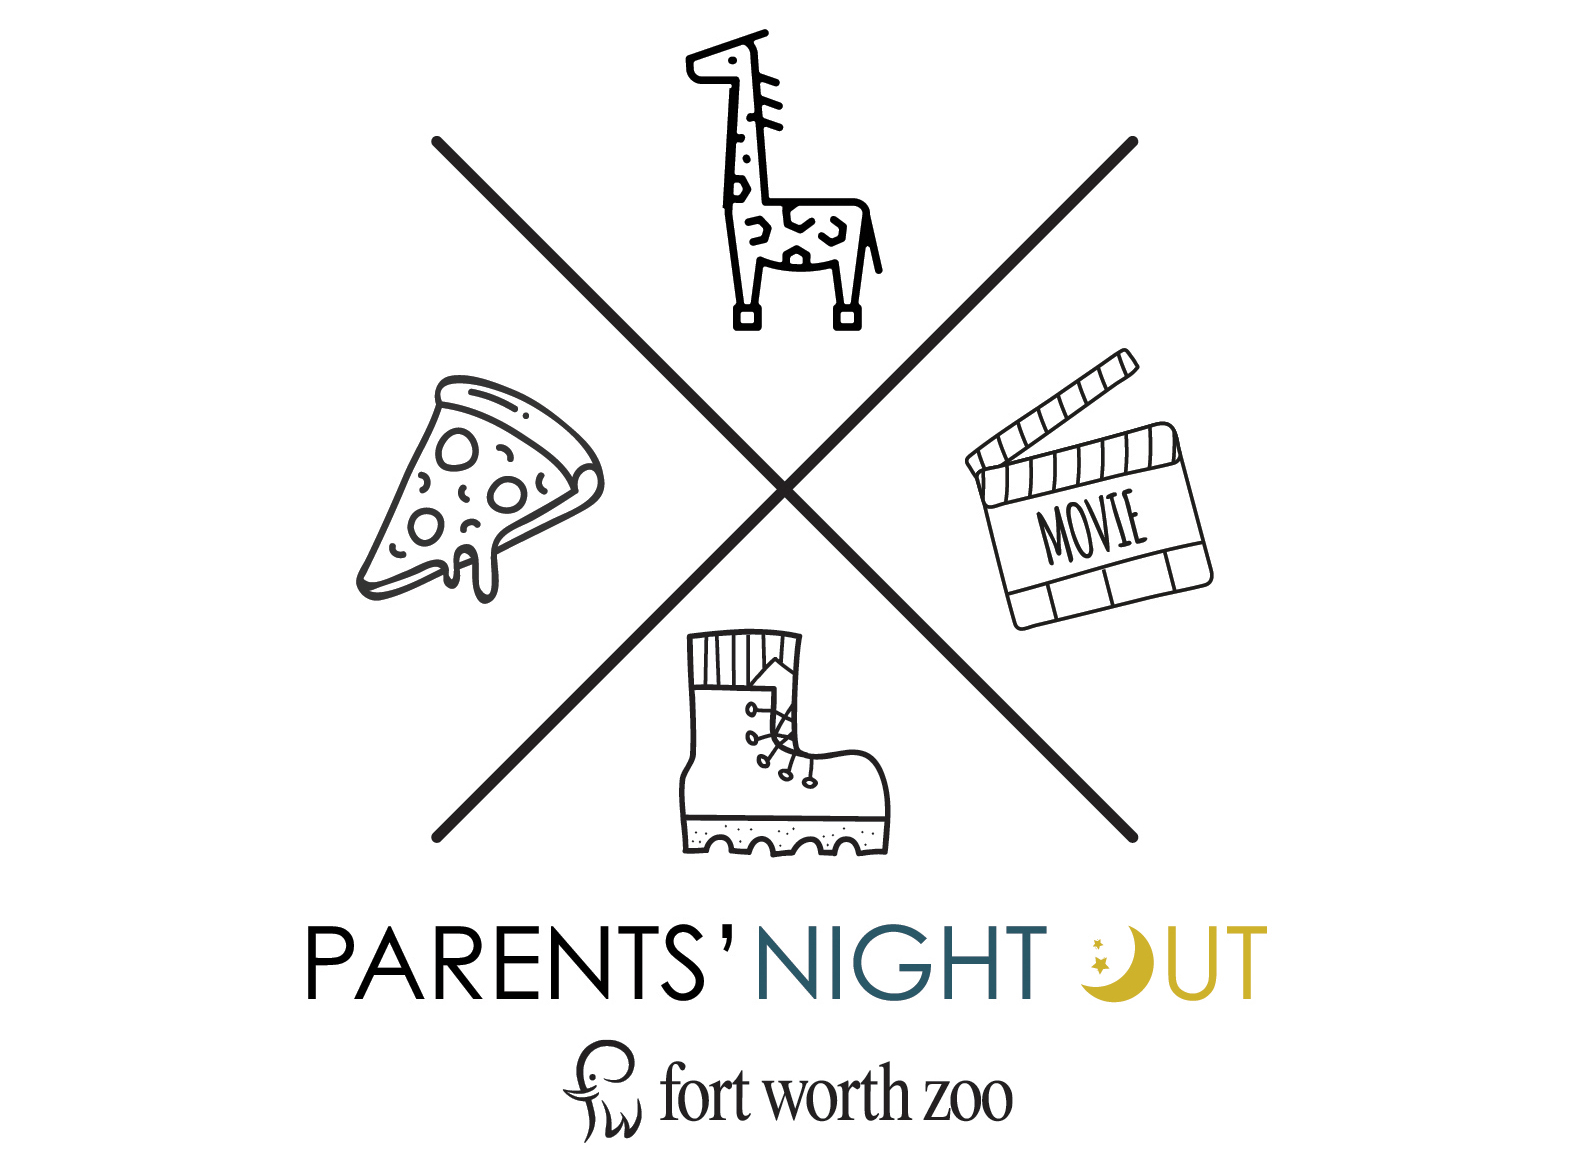 Parents' Night Out image